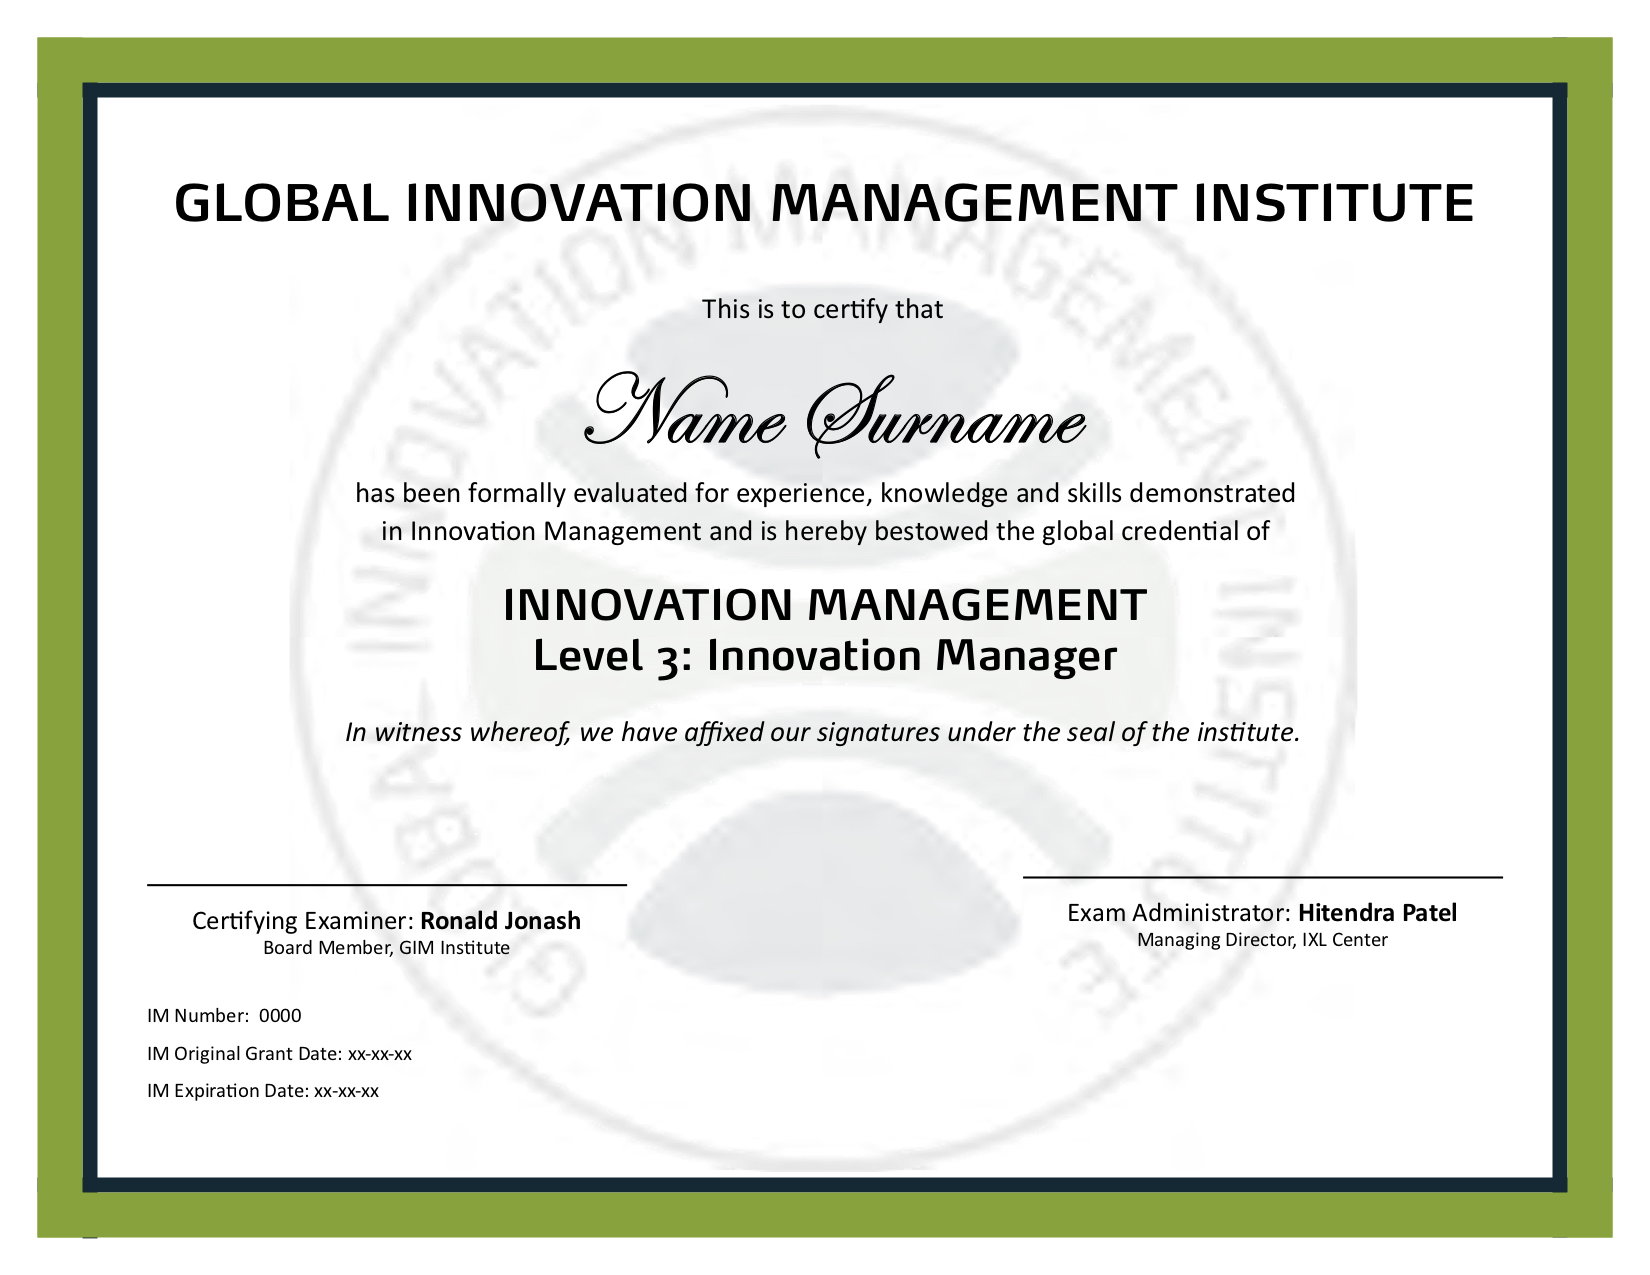 Manager (Level 3) Certification